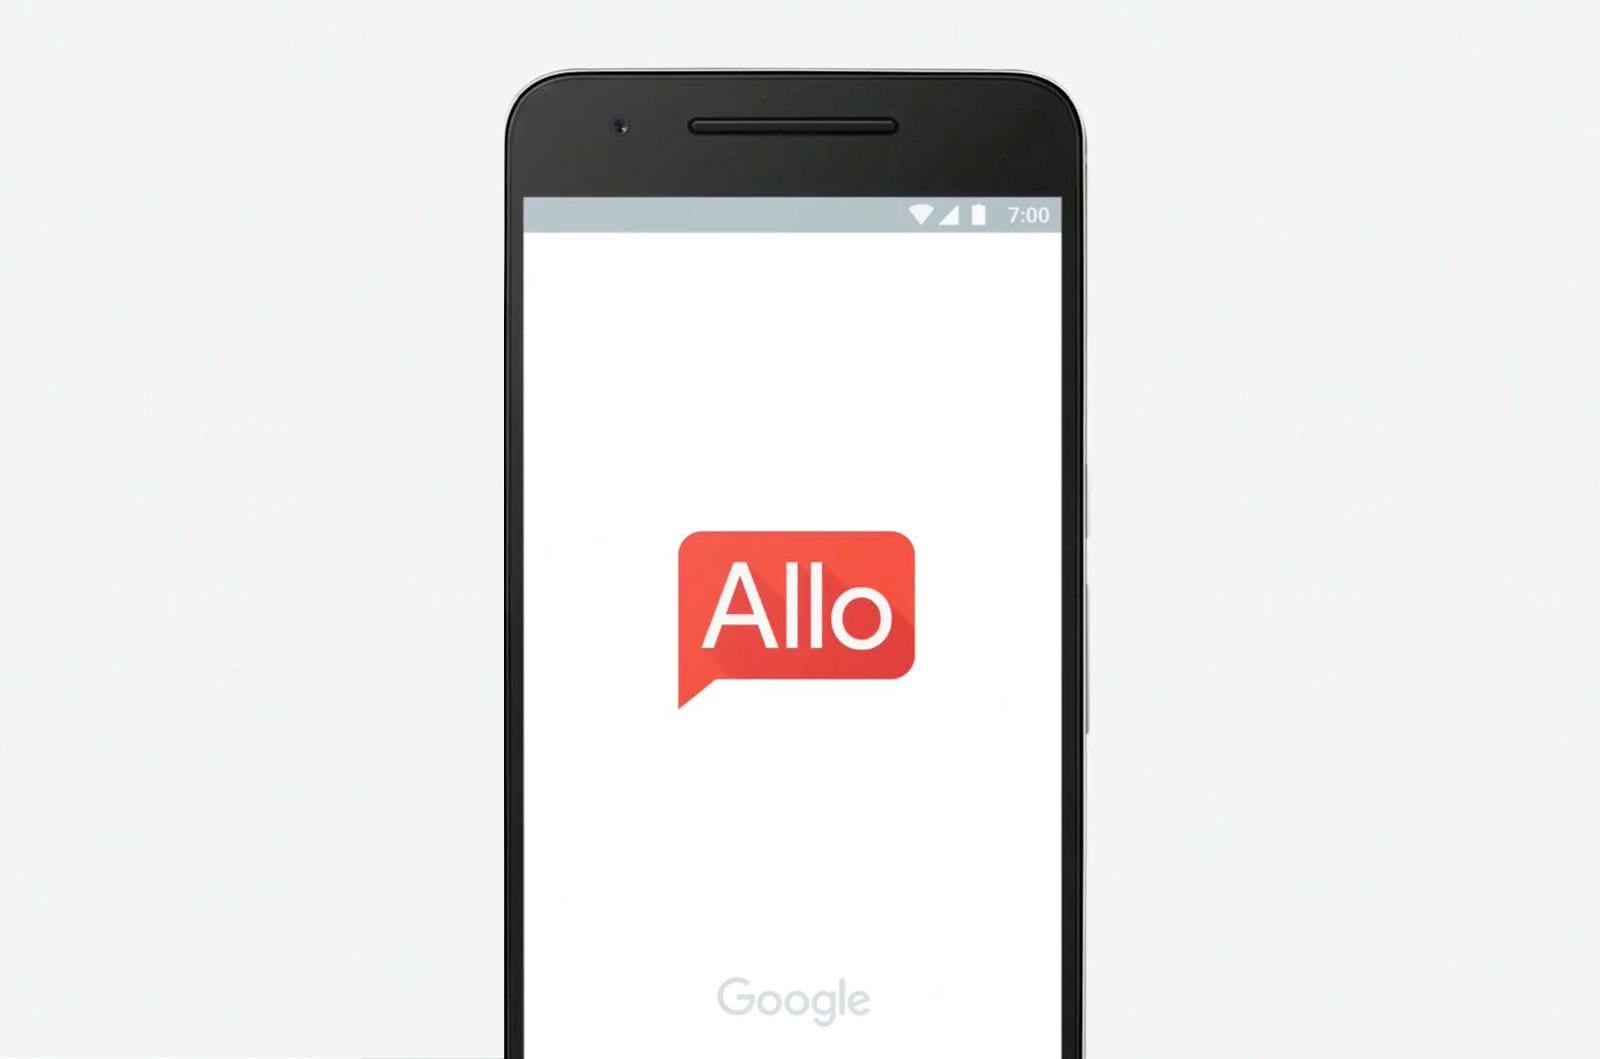 Allo is a messaging app with Google built right in